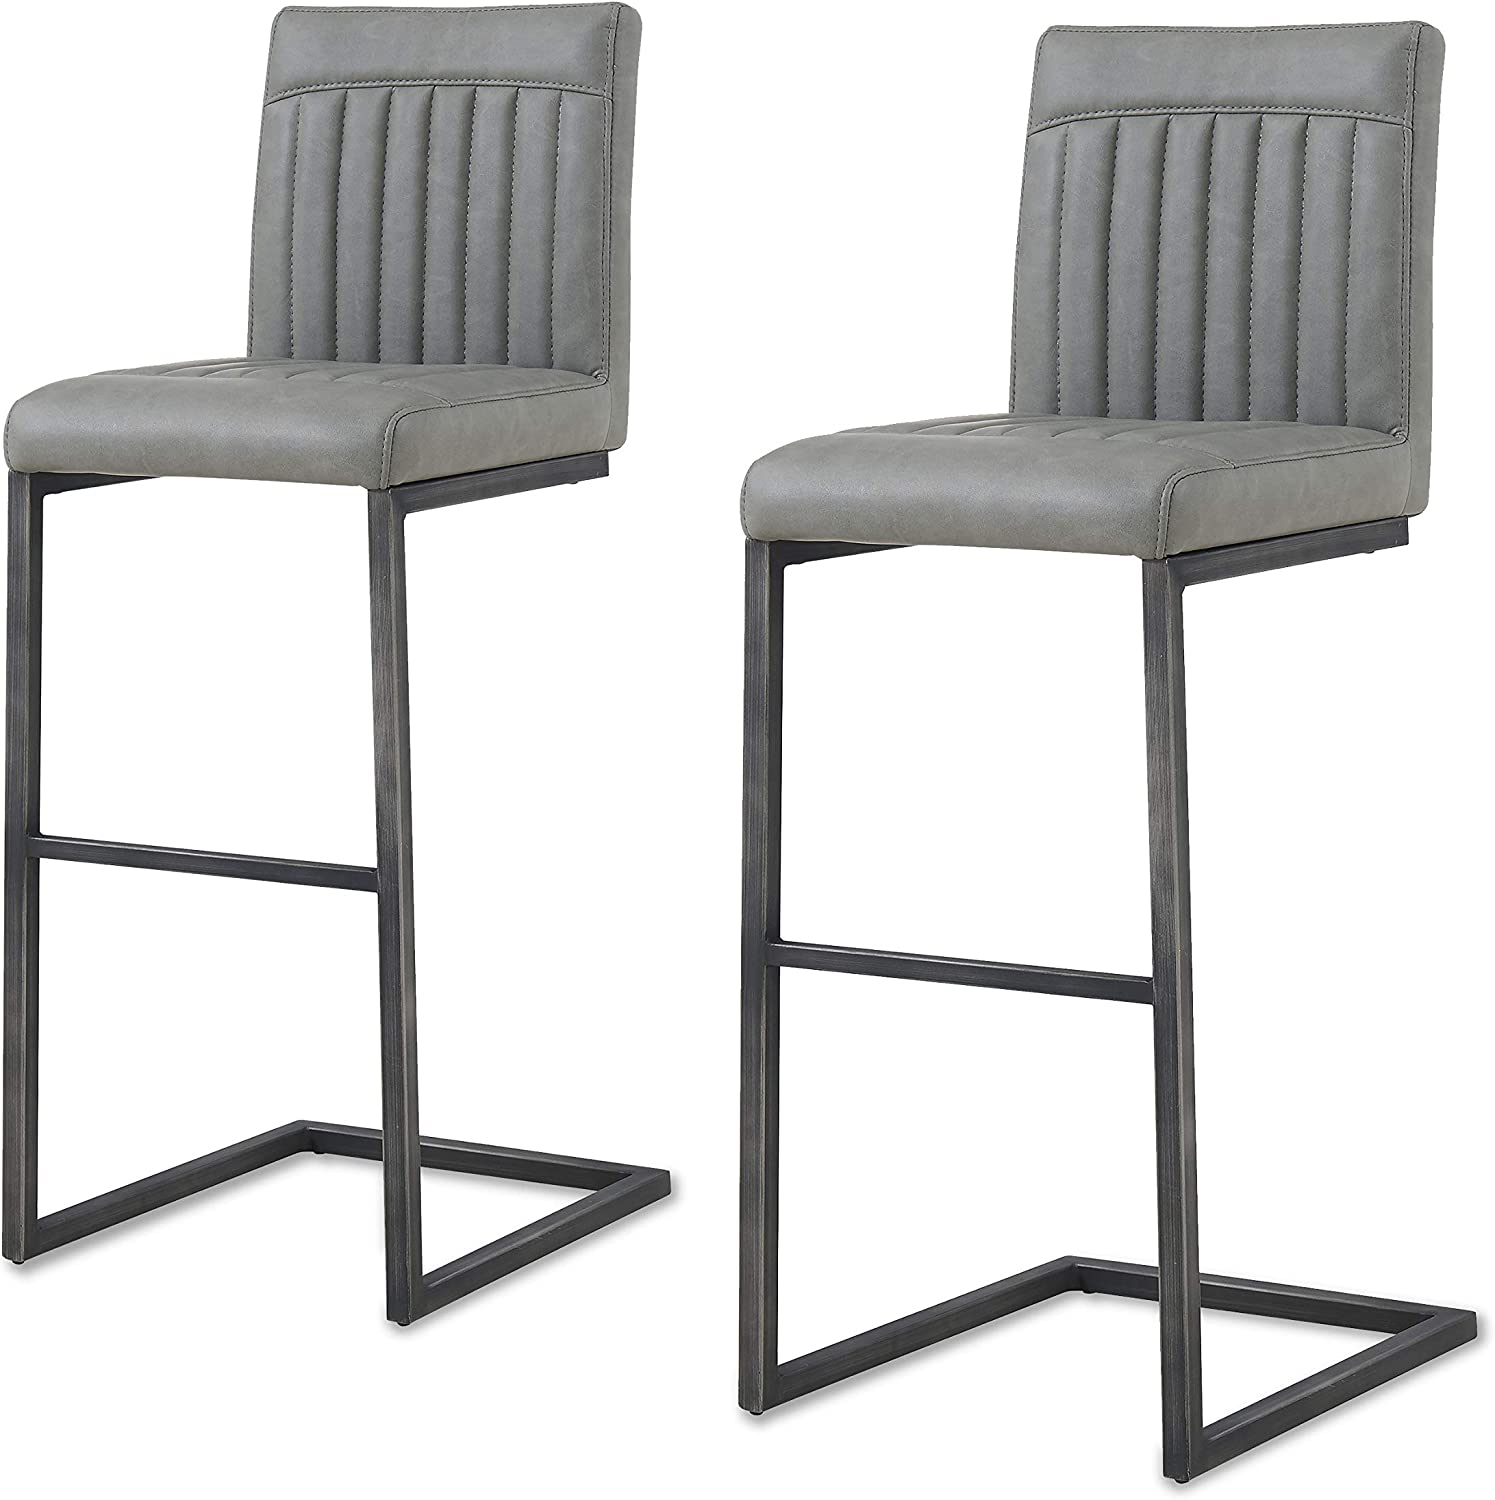 New Pacific Direct Ronan PU Leather Bar, Set of 2 Bar & Counter Stools, Antique Graphite Gray